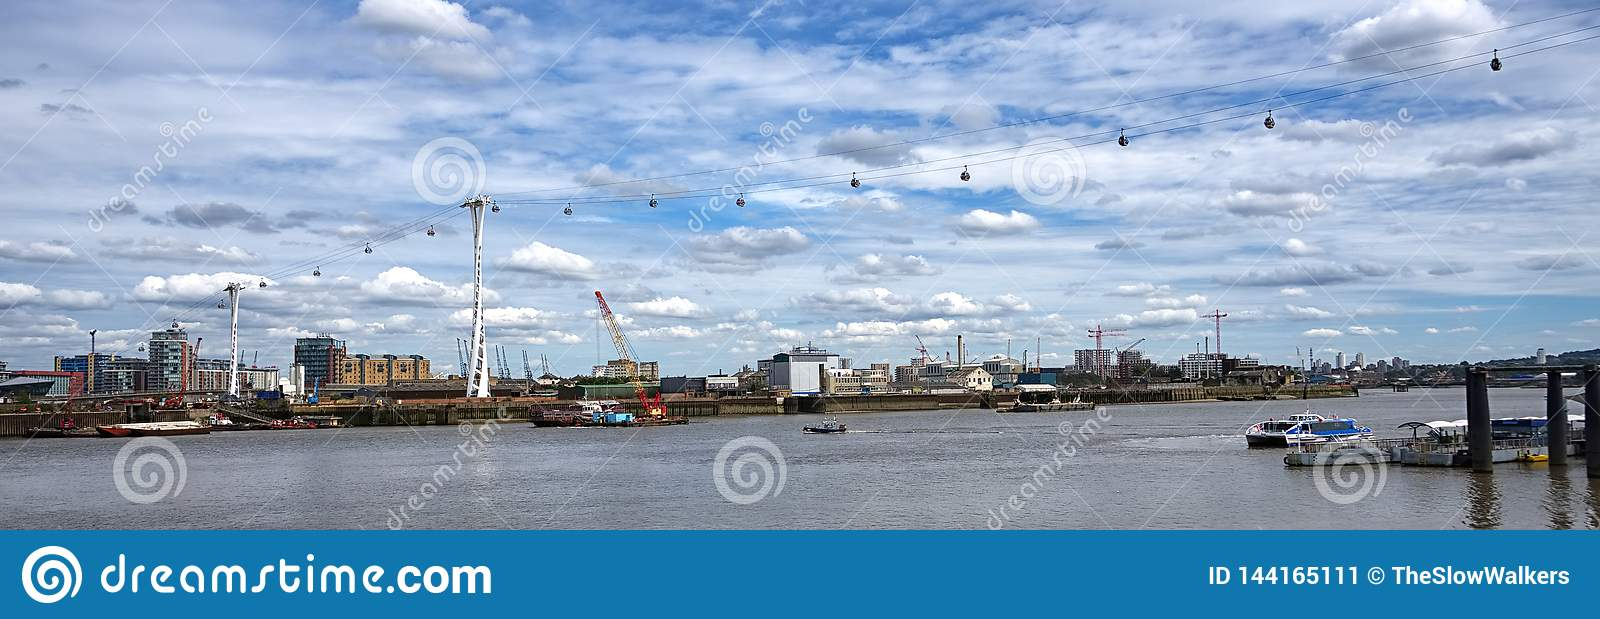 Wide angle. Cable cars crossing over River Thames, London.